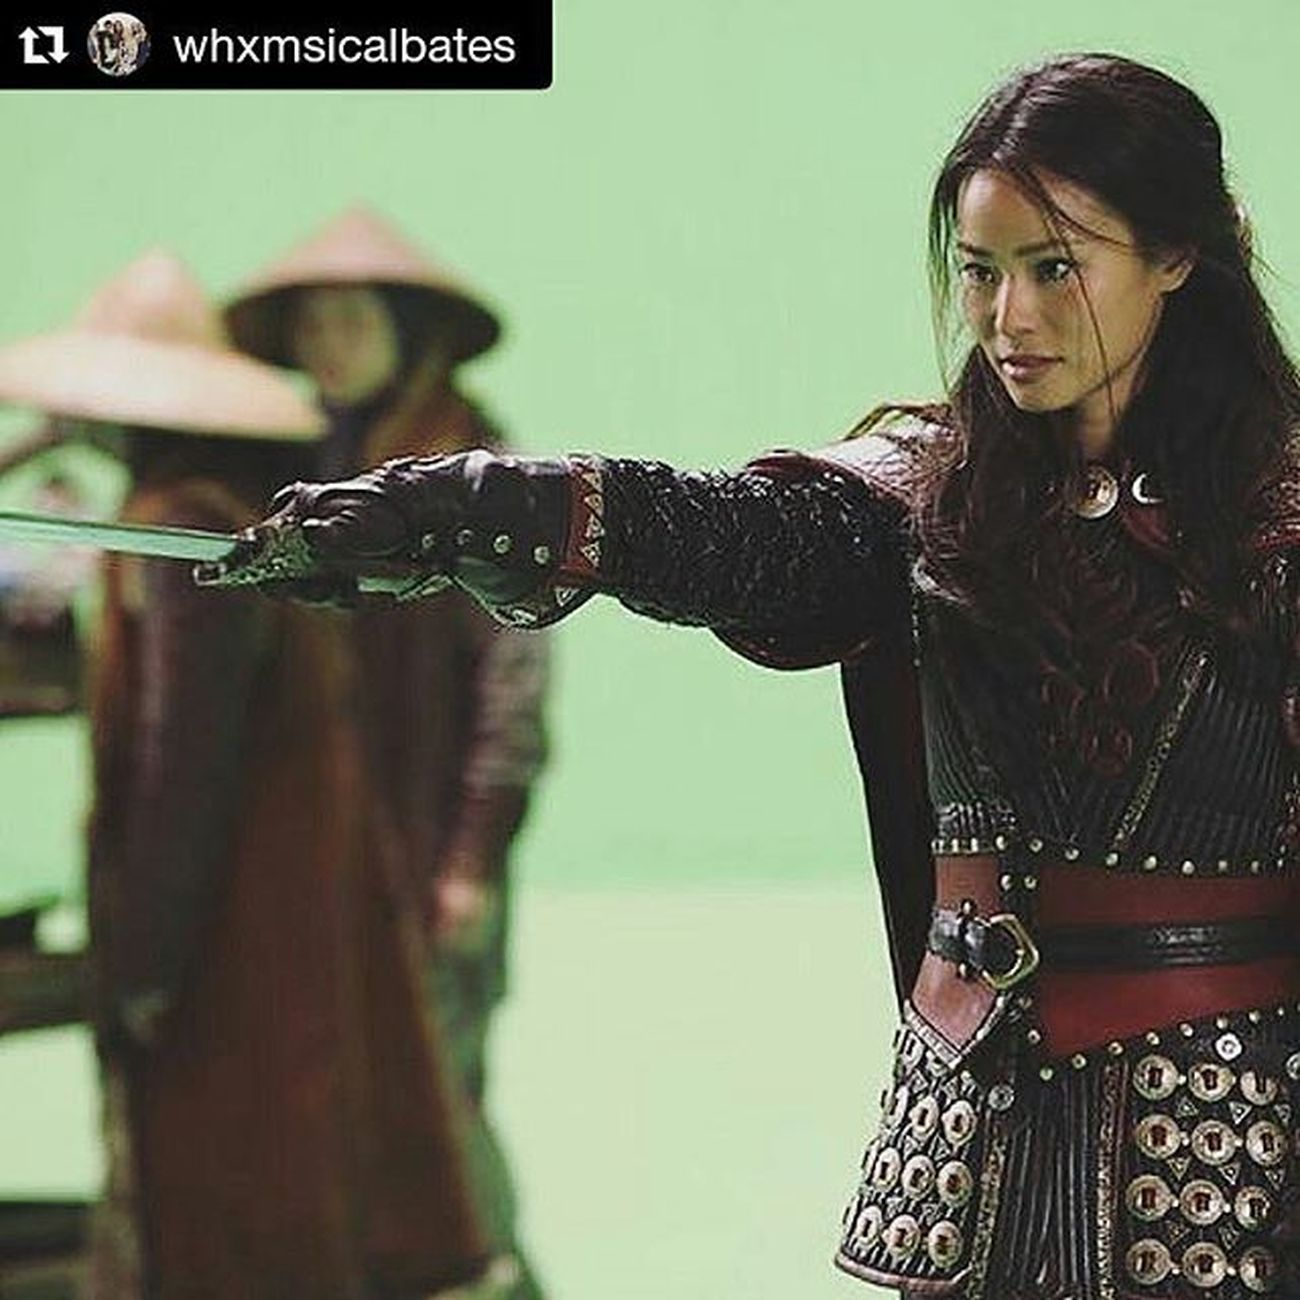 Repost @whxmsicalbates ・・・ very excited to have @jamiejchung back for season 5 💕 { ABC Ouat Onceuponatime Onceuponatimeseason5 Ouatseason5 Onceseason5 Mulan Jamiechung }